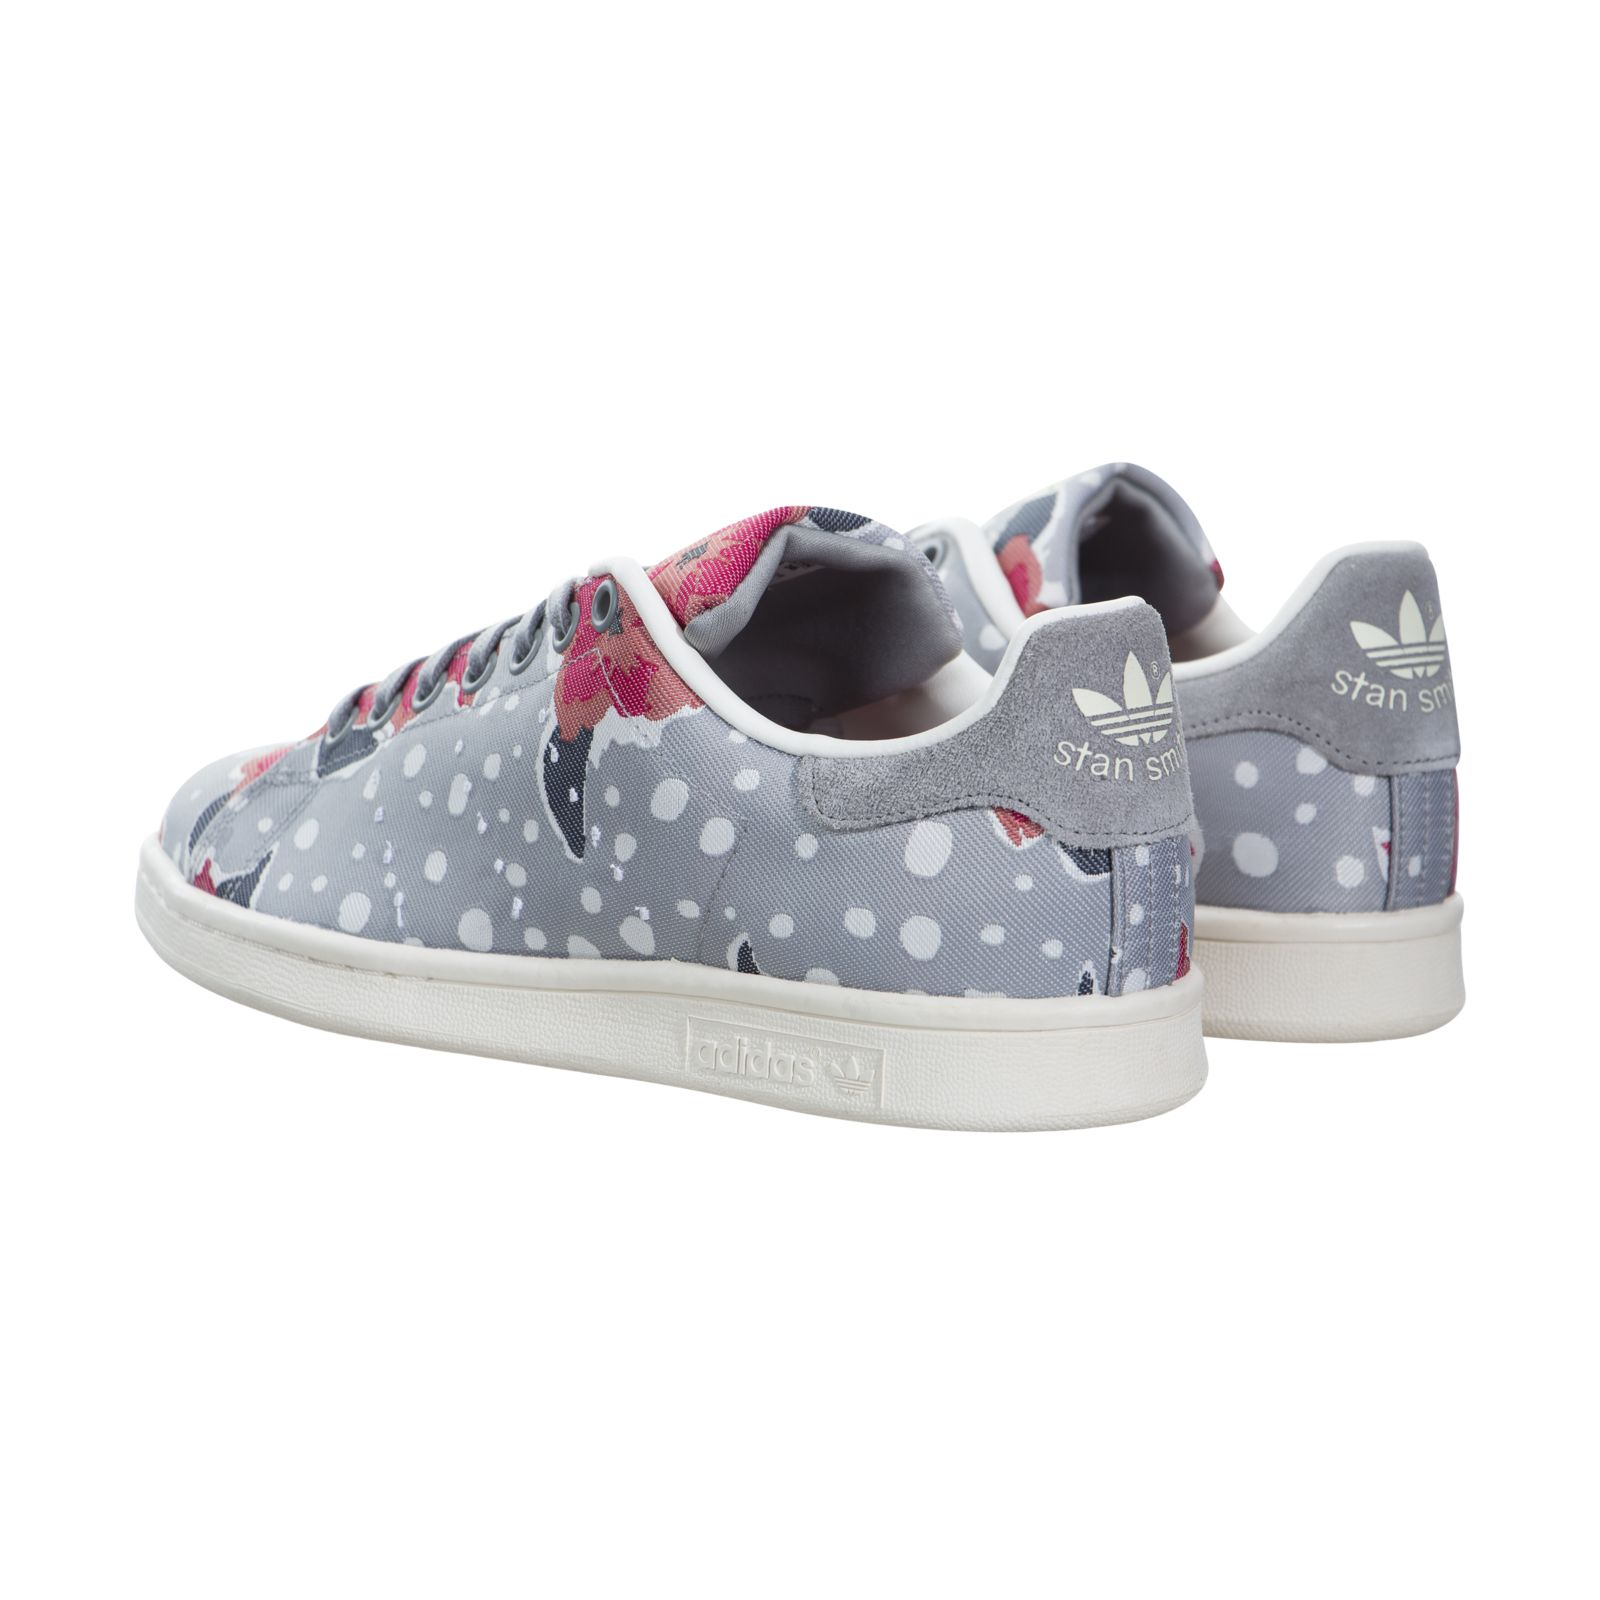 3d2d96206 Adidas Stan Smith W s32254 4 4 of 5 See More